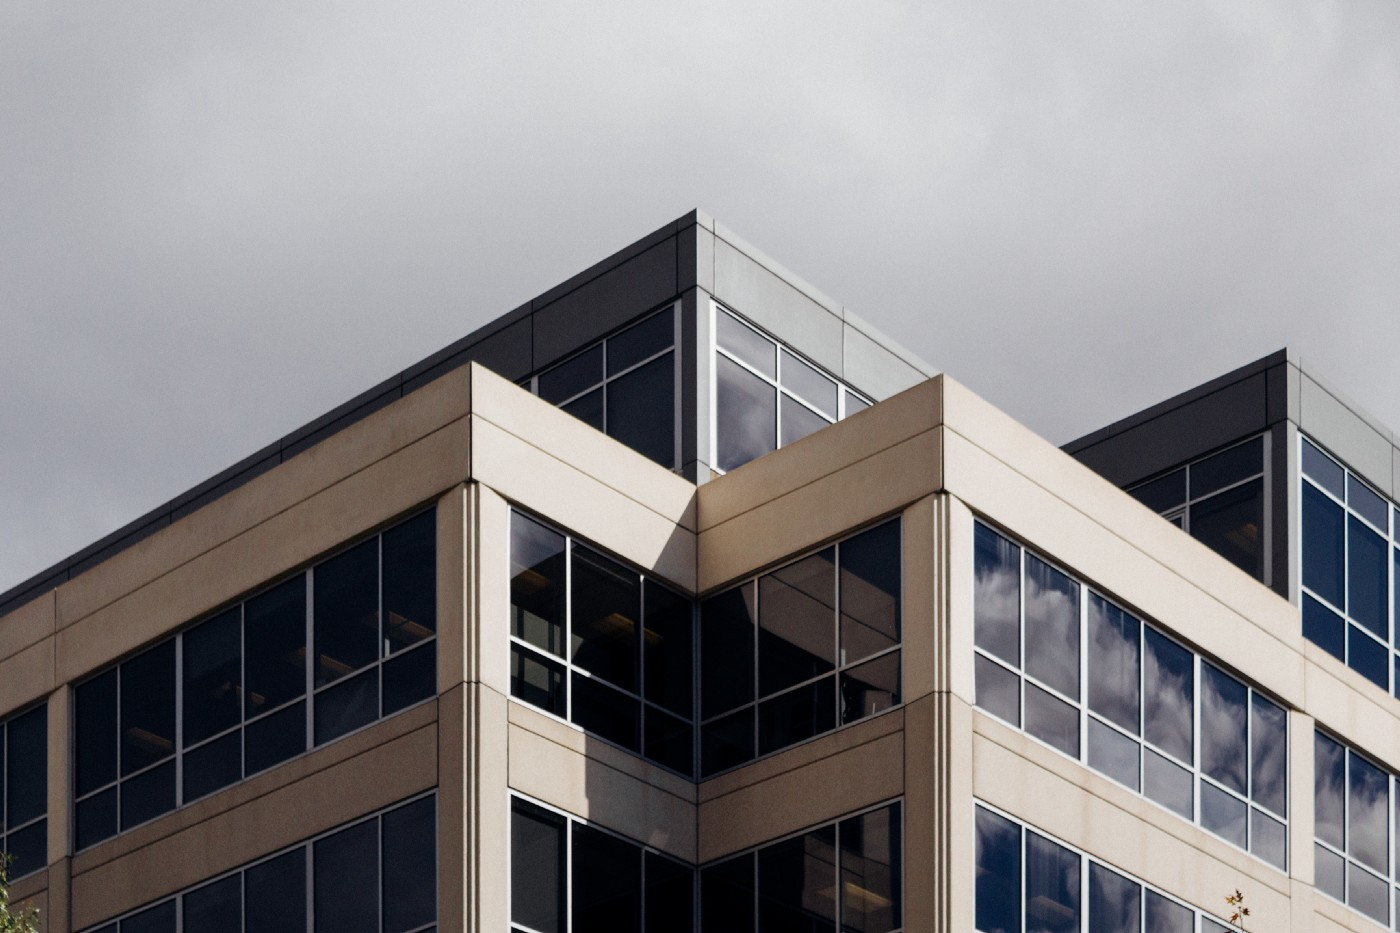 Angular modern building with many windows against a grey sky